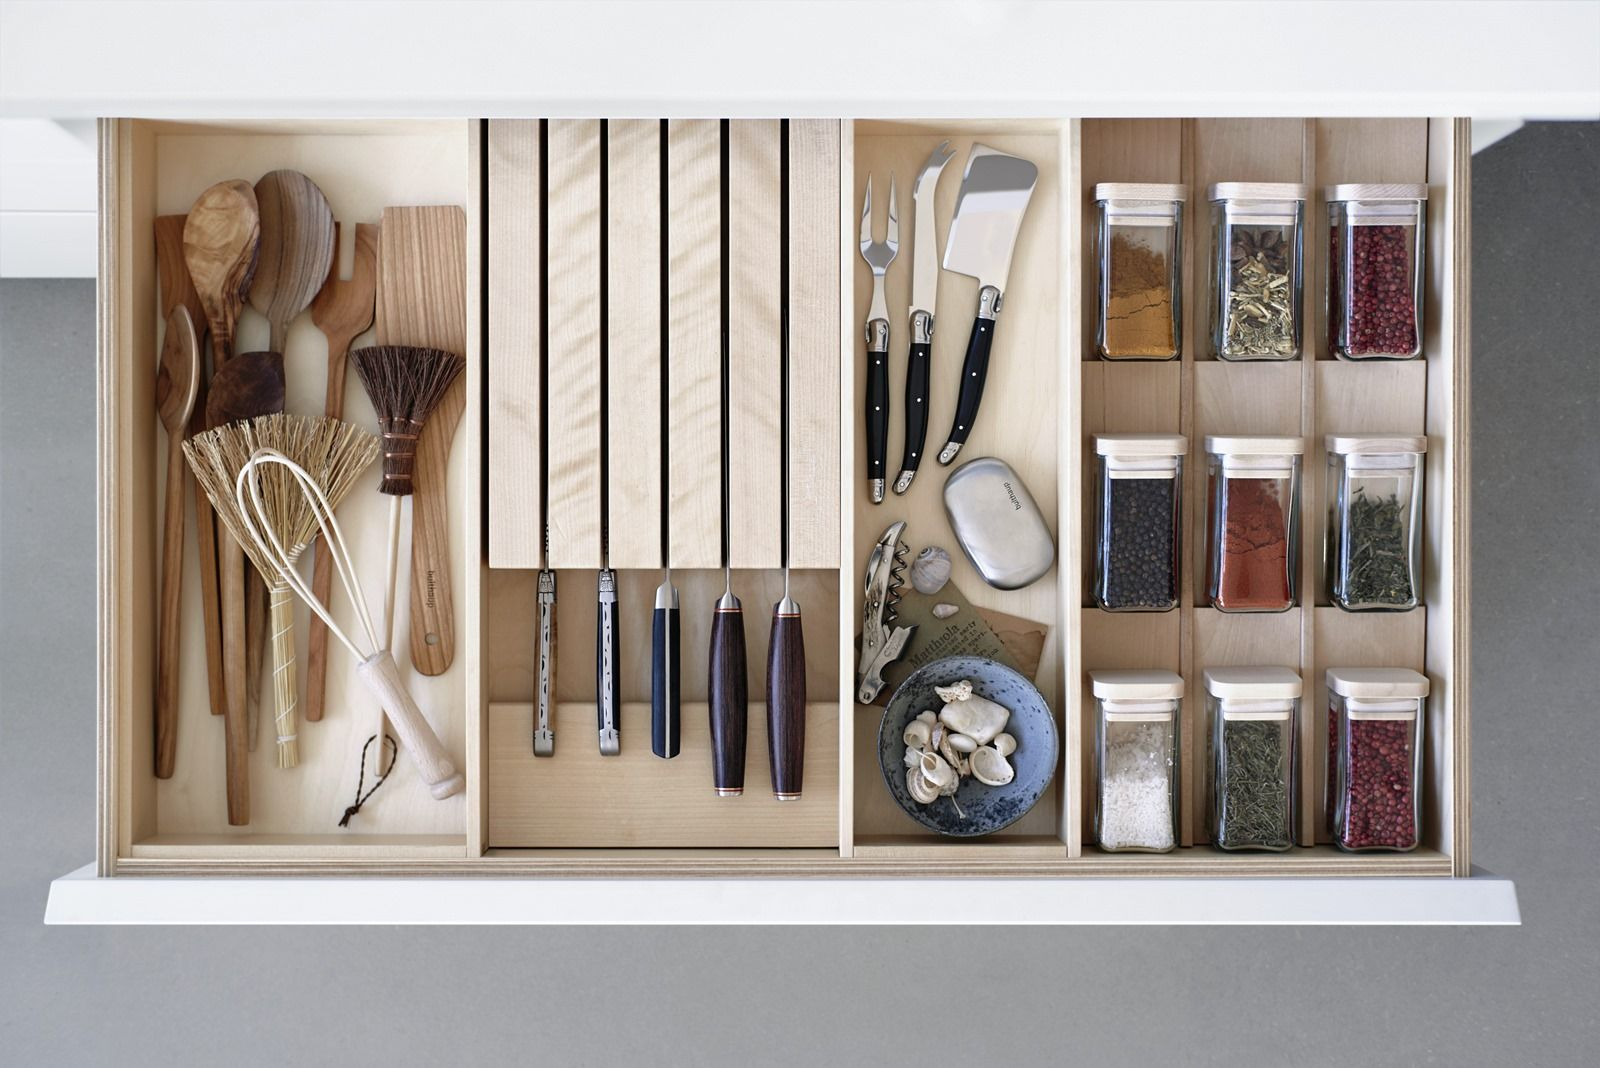 With wooden boxes and inserts for knives and spice jars, planning ...